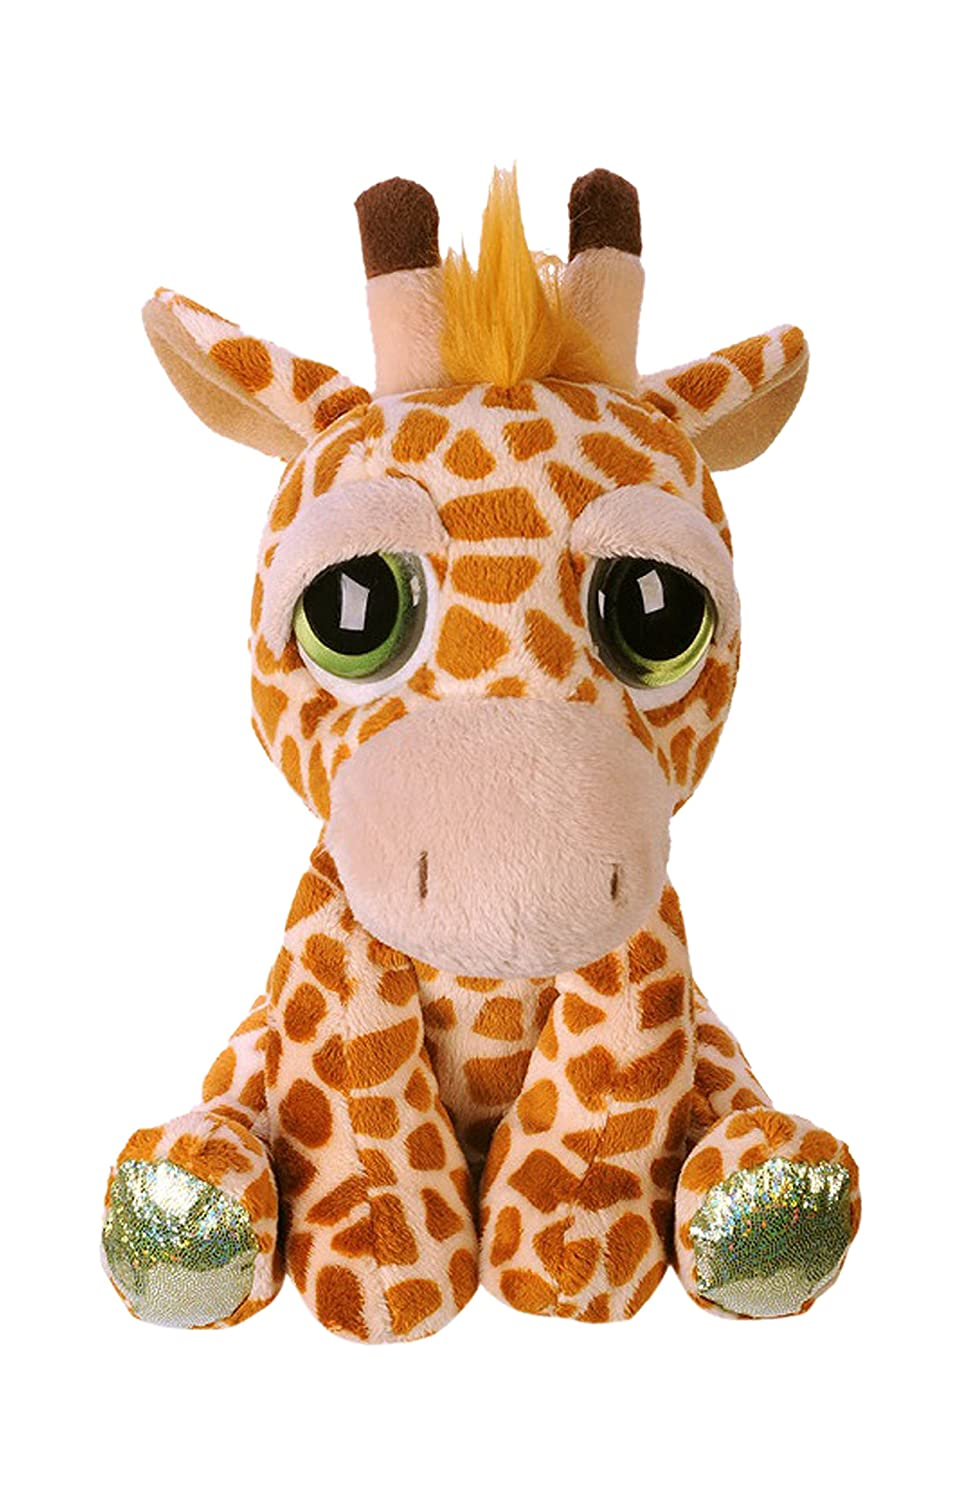 Suki Gifts Lil Peepers Fun Kenya Giraffe Plush Toy with Green Sparkle Accents, Medium 11076